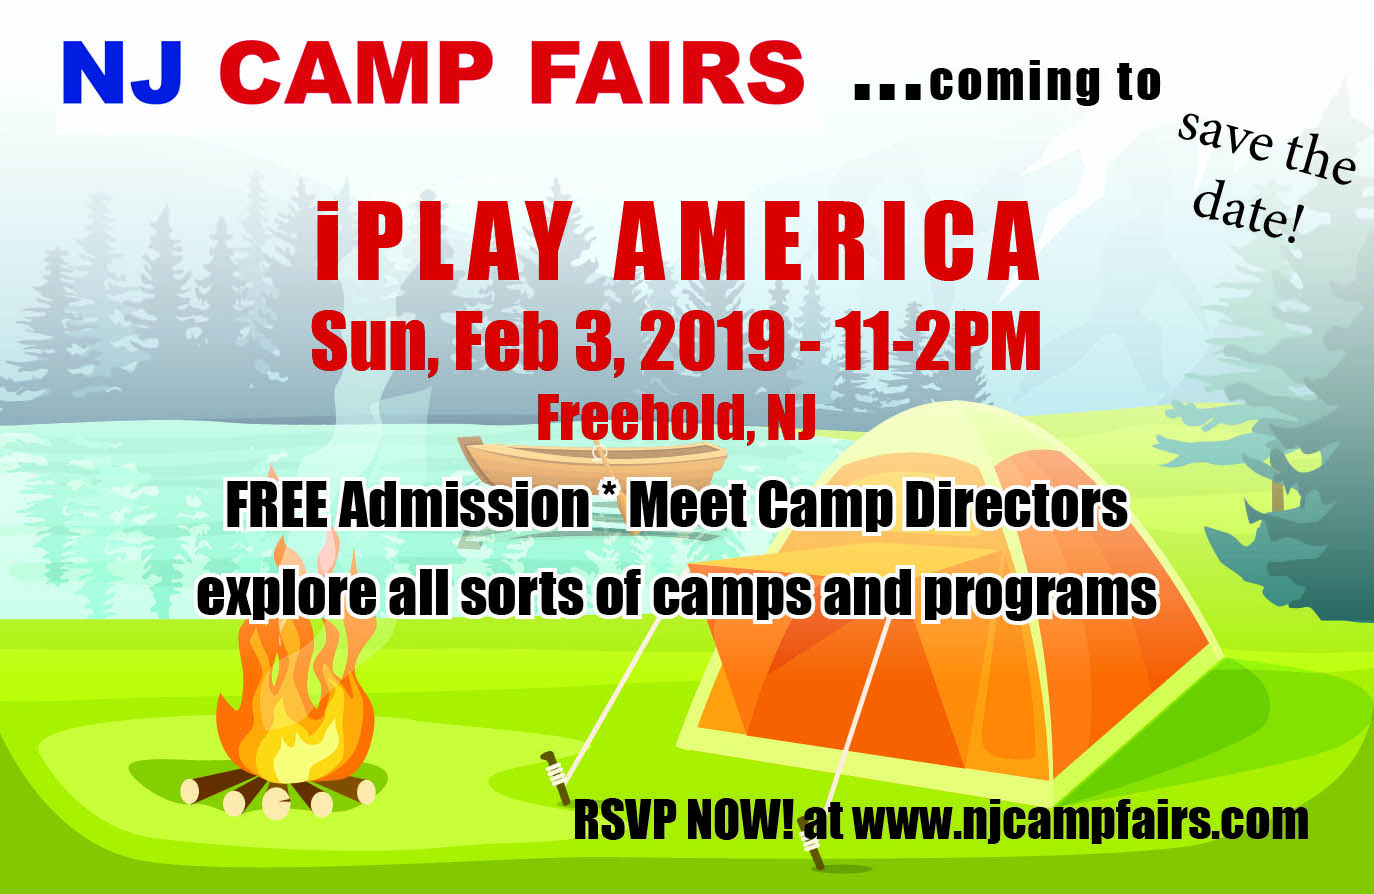 NJ CAMP FAIRS - held at iPLAY AMERICA